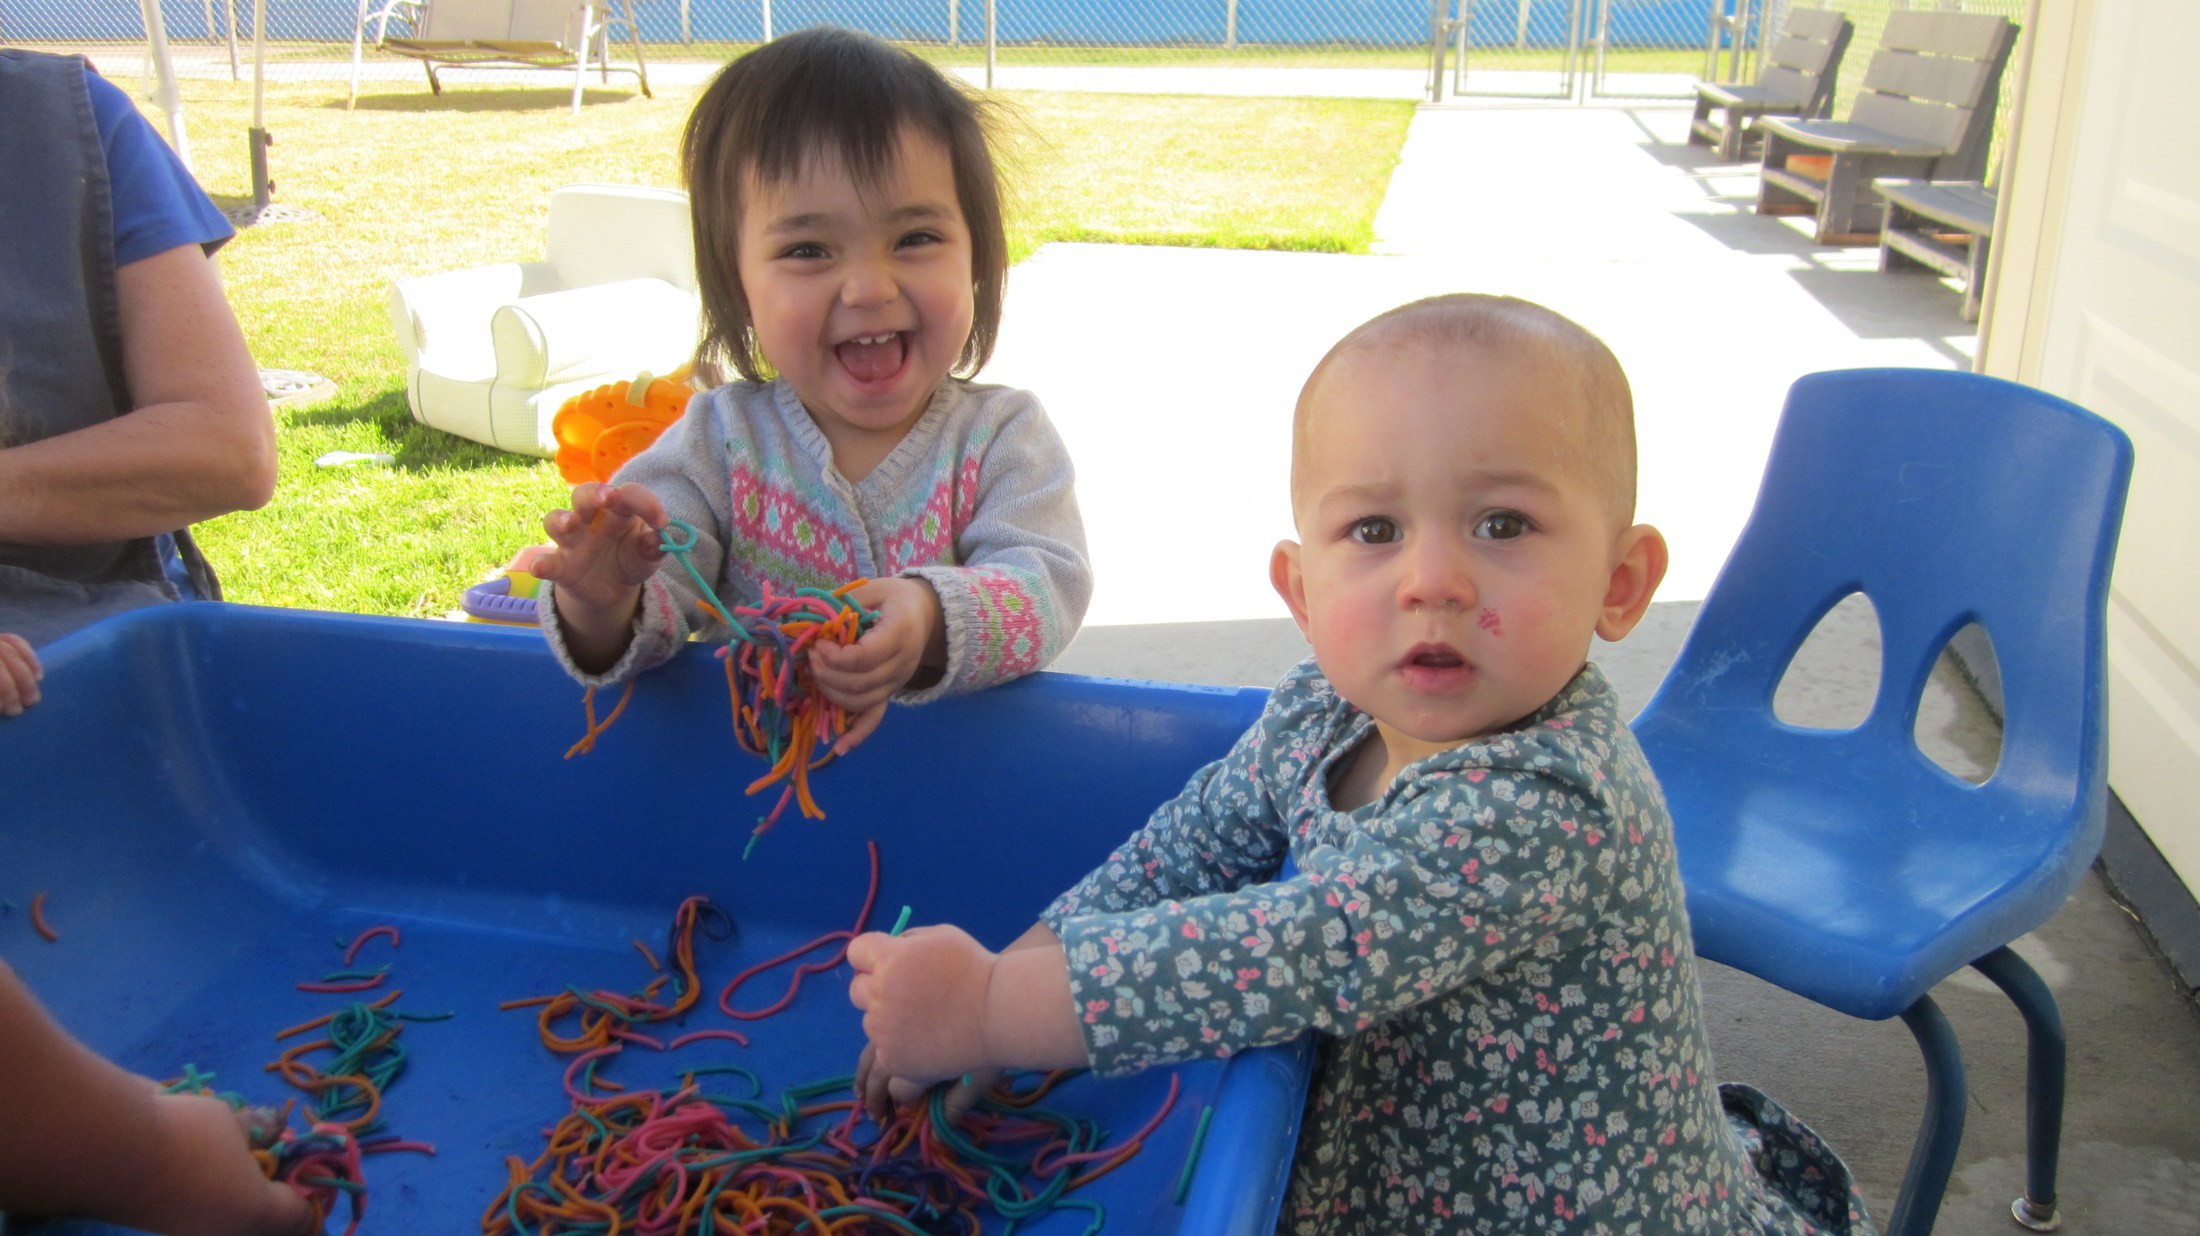 Two babies playing